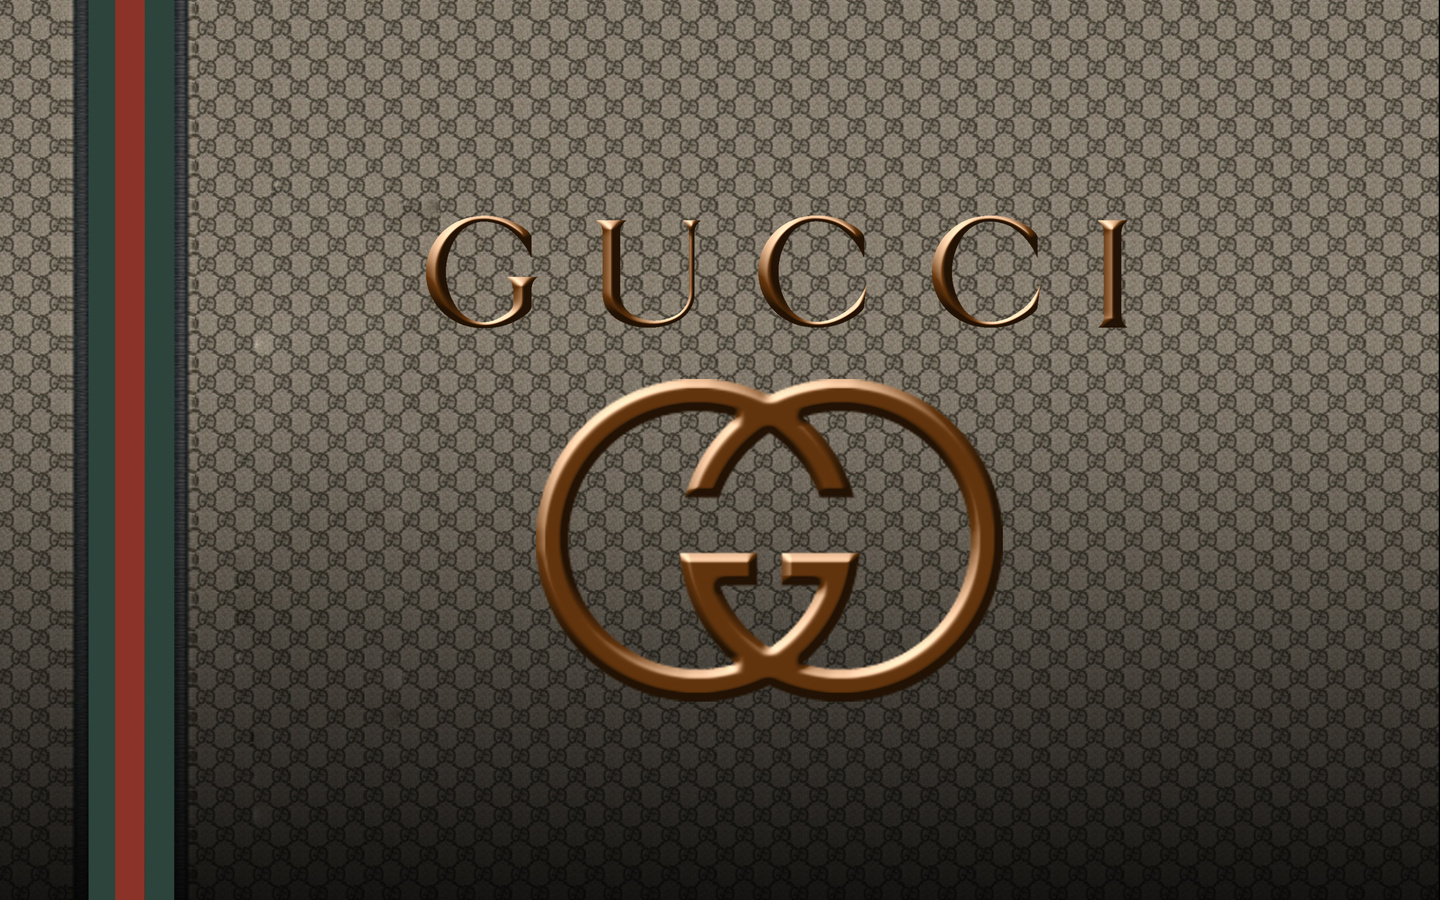 Pics Photos   Gucci Brand Logo Design Background Hd 1440x900